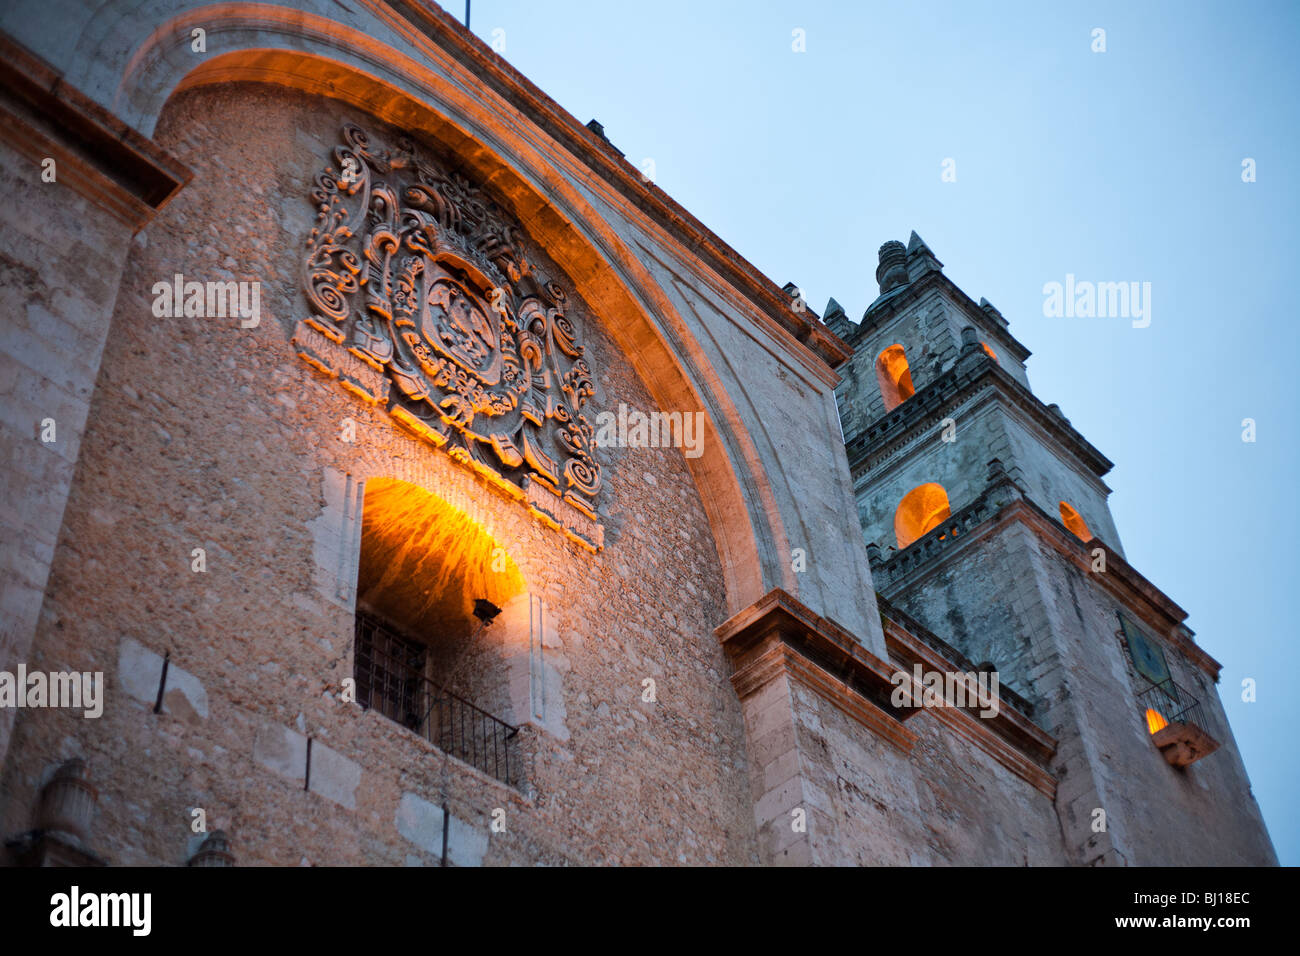 Floodlit facade of Merida's an Idelfonso Cathedral. The oldest cathedral in Mexico - Stock Image